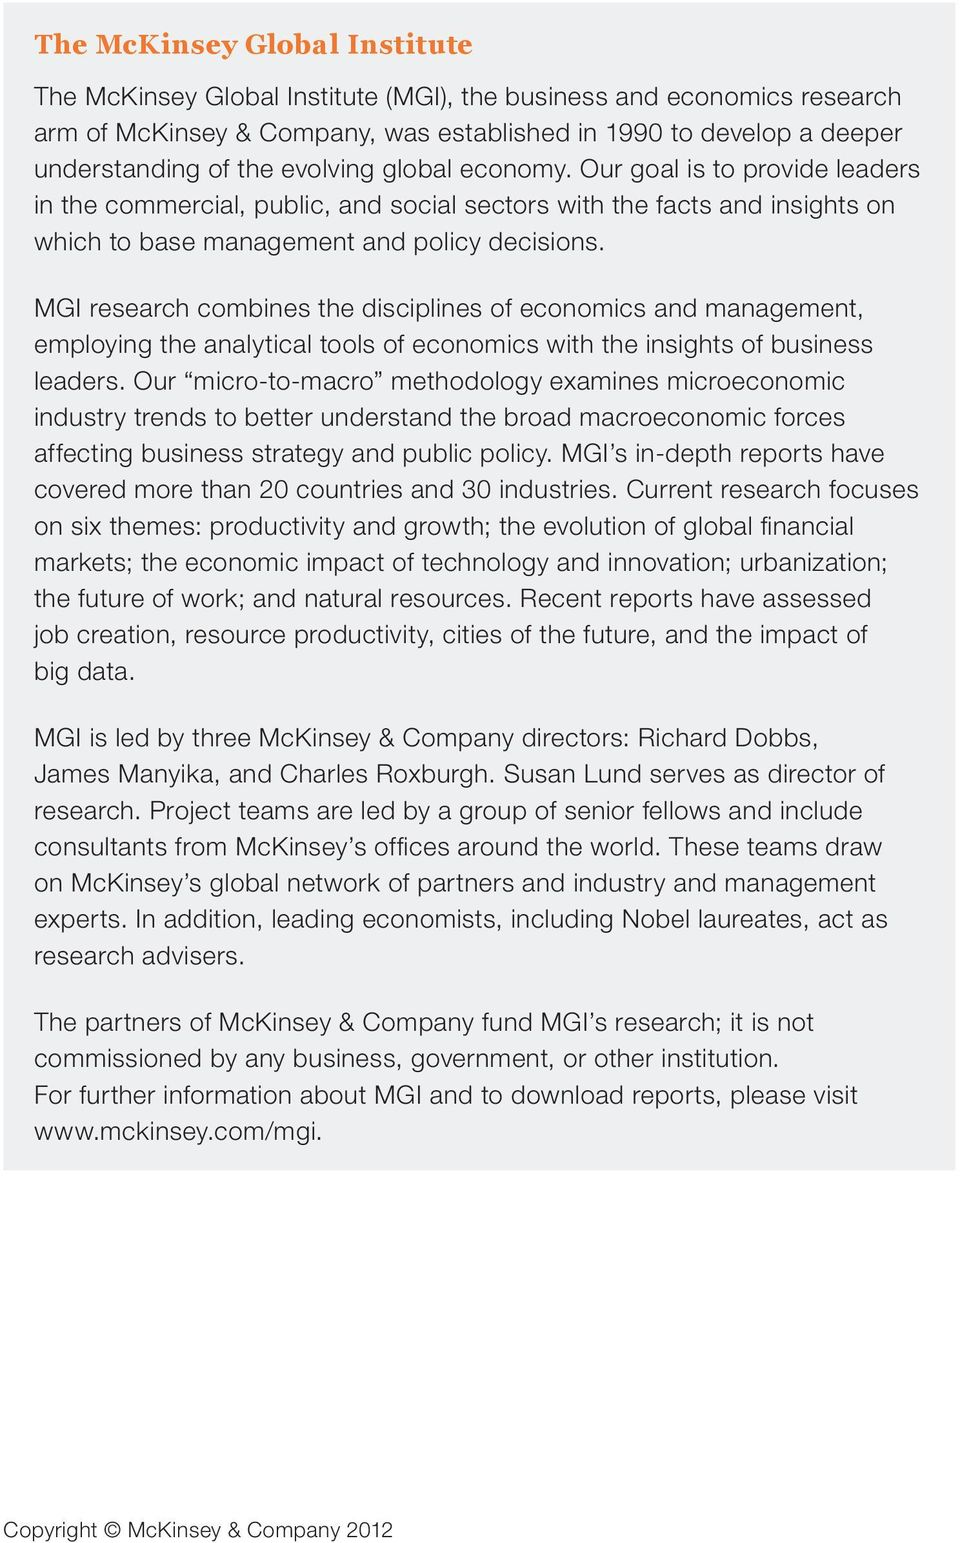 MGI research combines the disciplines of economics and management, employing the analytical tools of economics with the insights of business leaders.